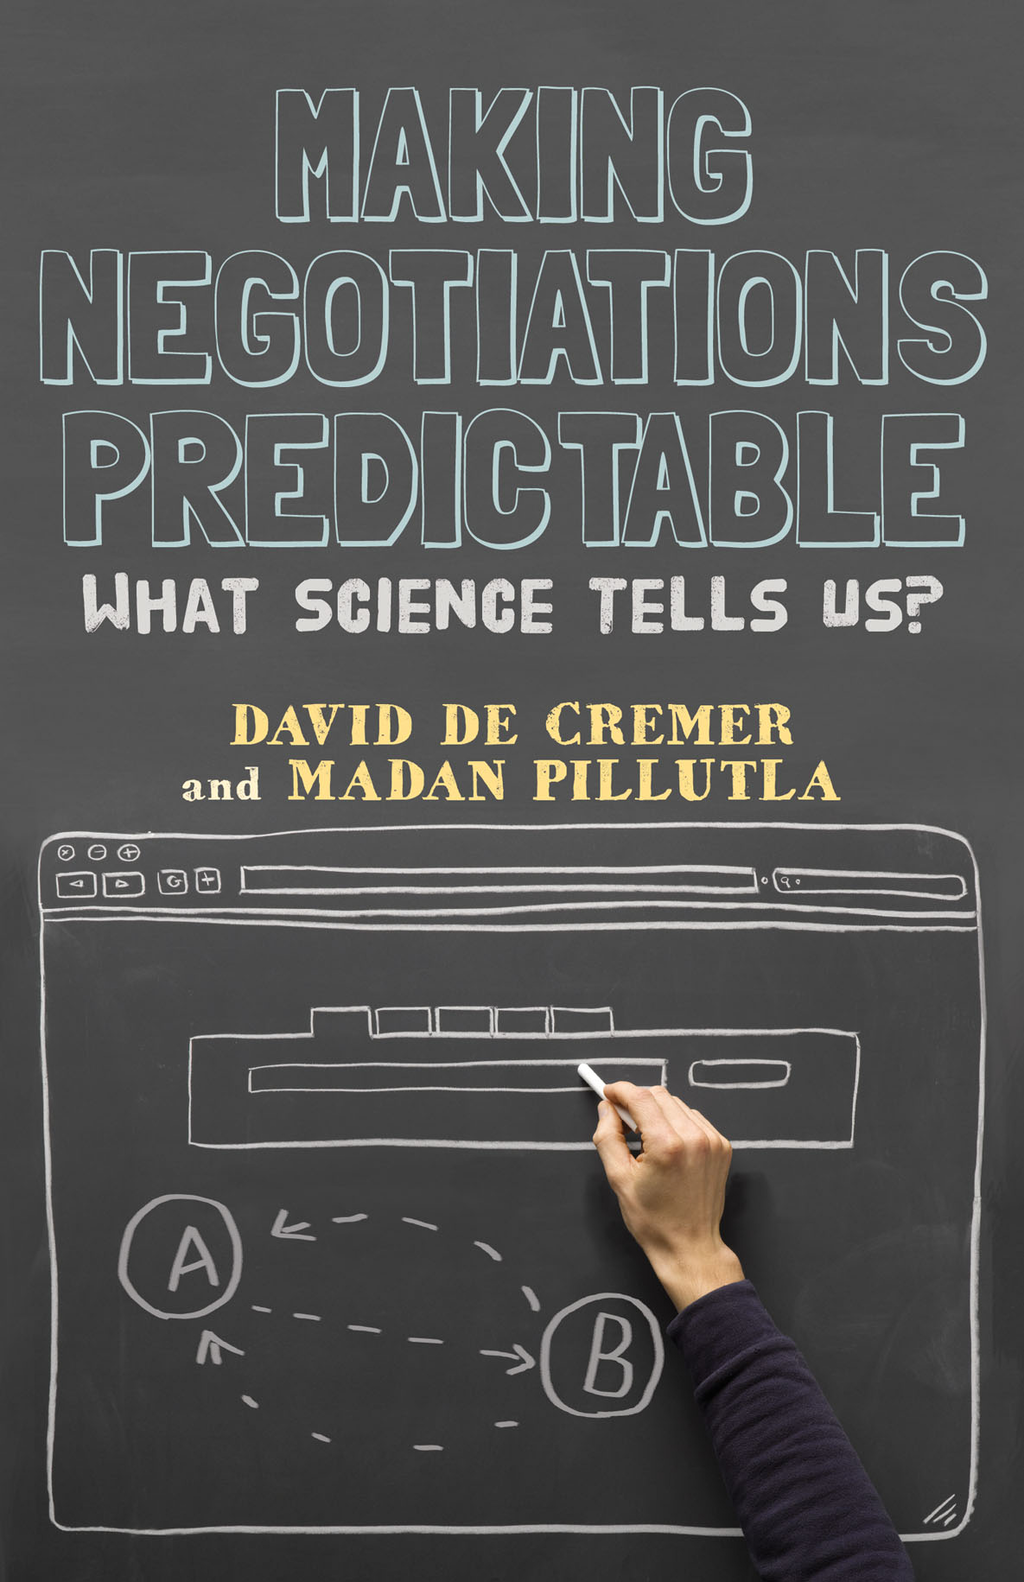 Making Negotiations Predictable What Science Tells Us